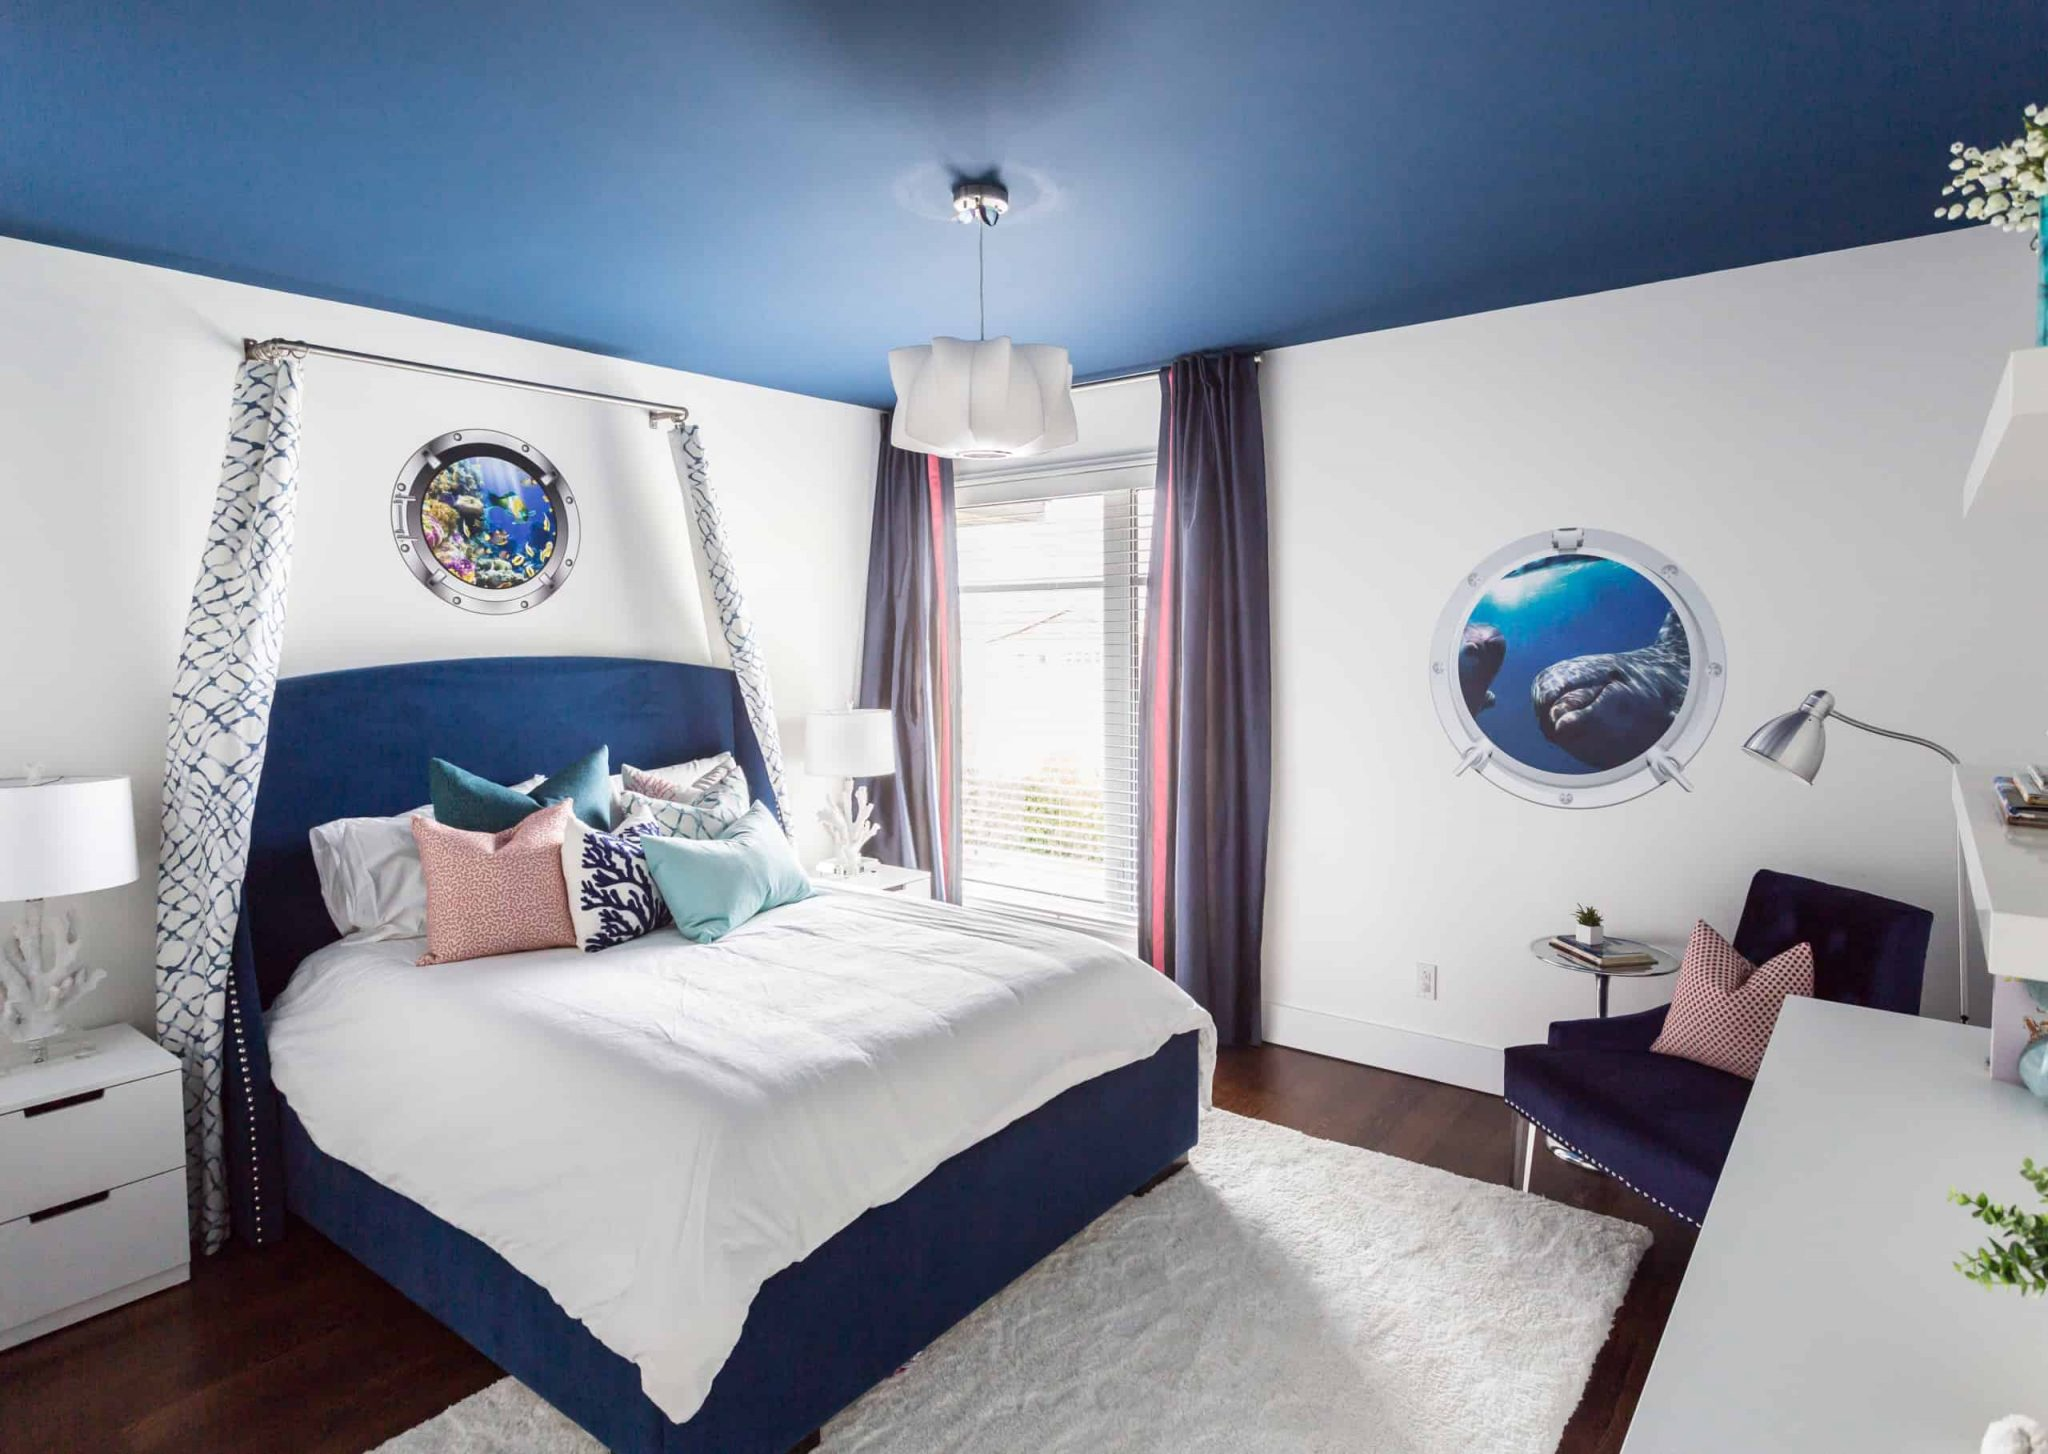 Blue and white bedroom with a window next to the bed